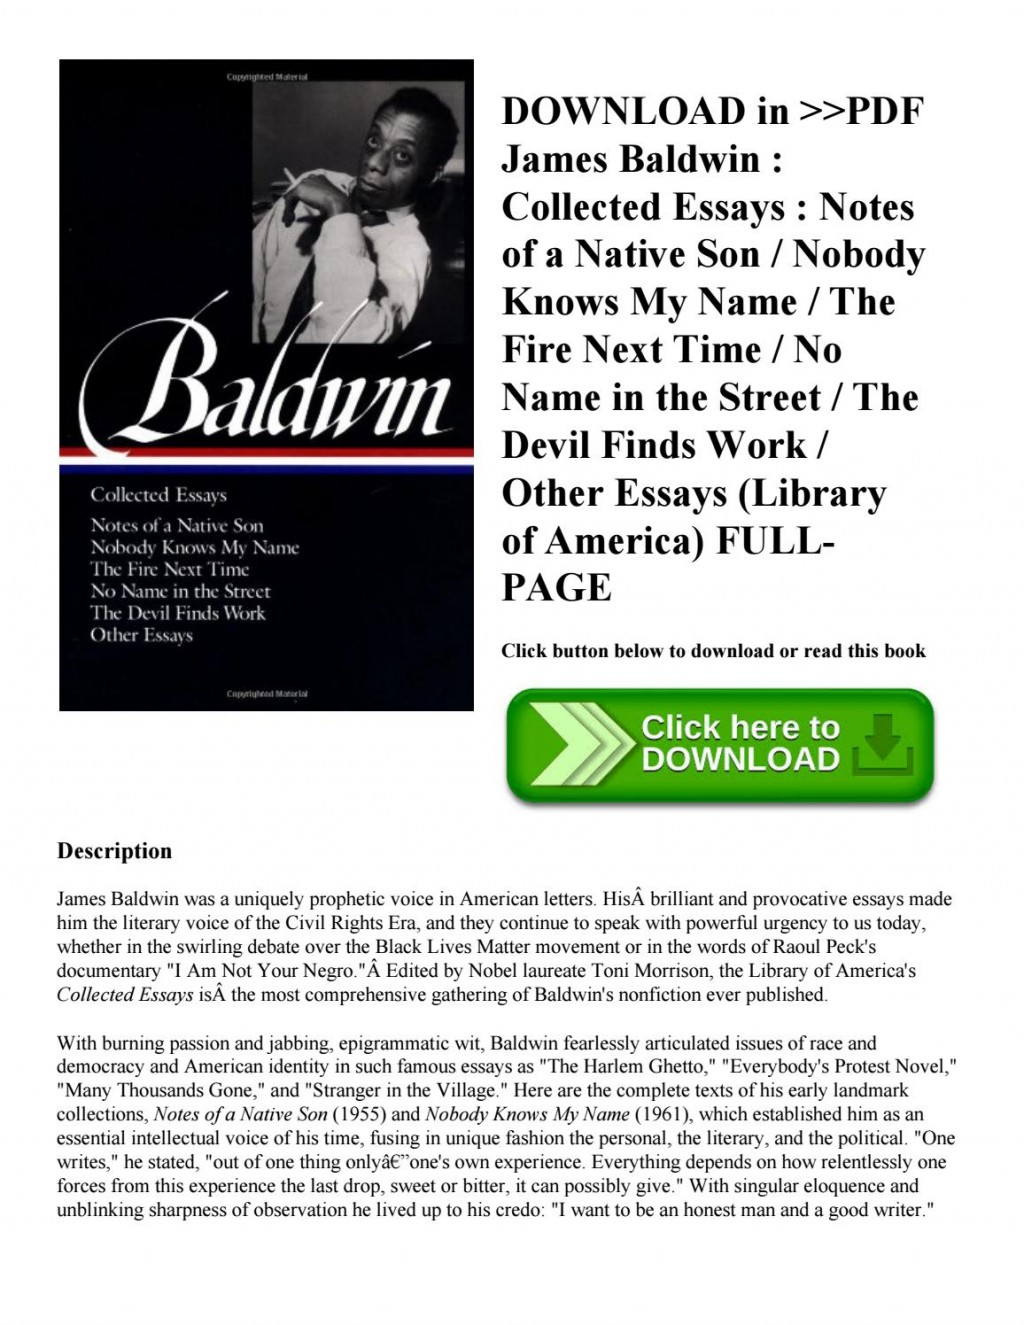 005 Essay Example James Baldwin Collected Essays Page 1 Wondrous Google Books Pdf Table Of Contents Large